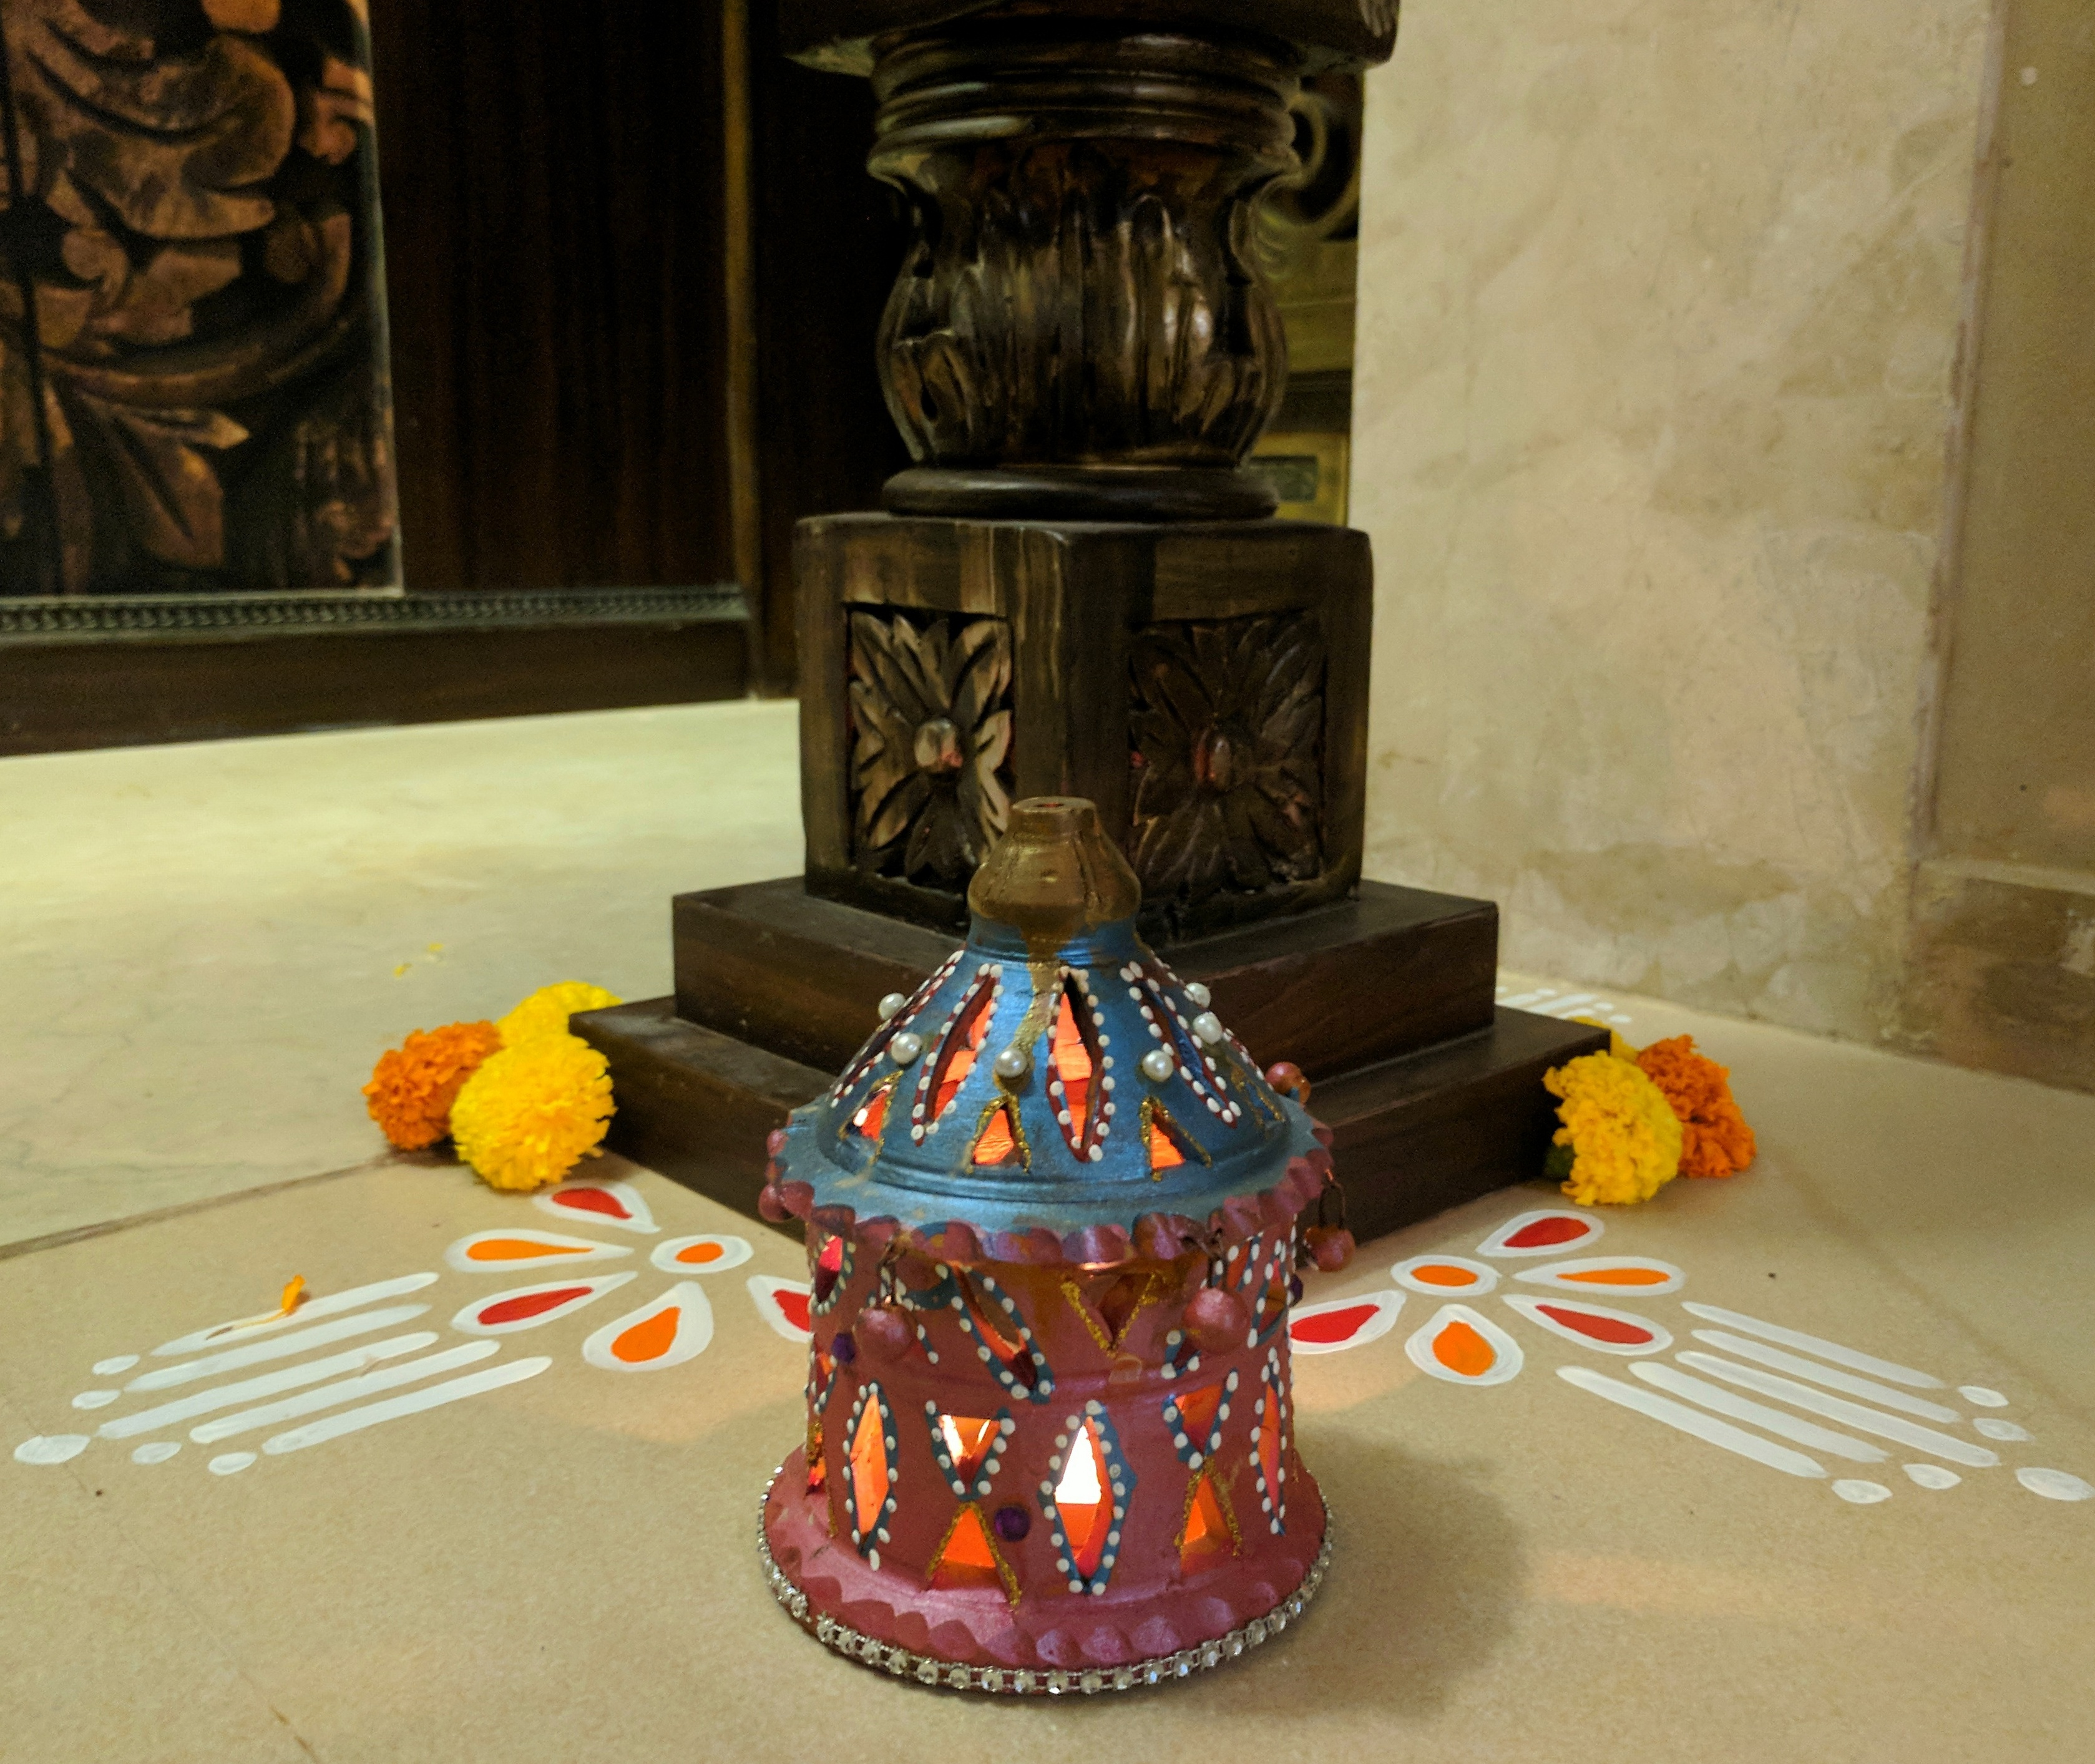 Decorating Home For Diwali: Decorating For Diwali Dinner (4) • One Brick At A Time